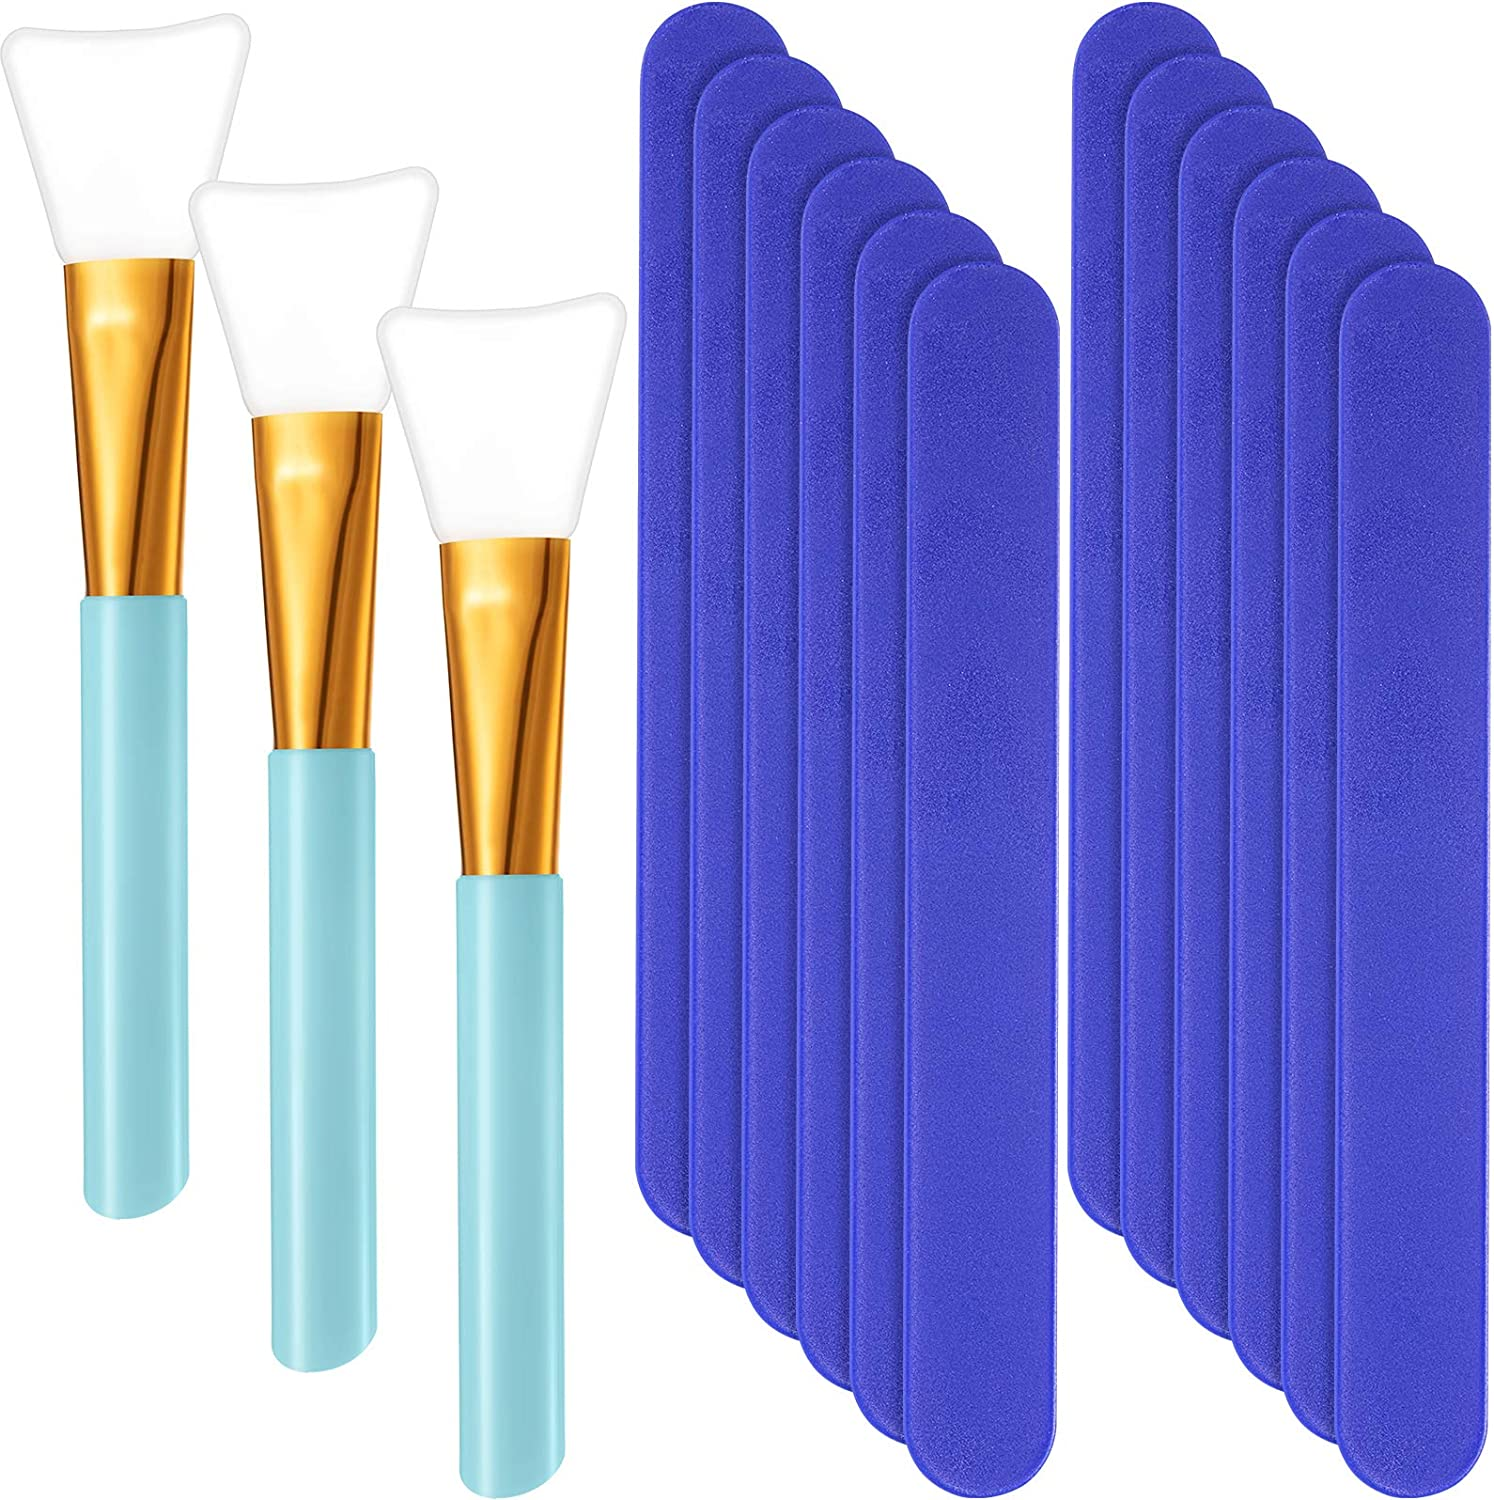 12 Dedication Pieces Plastic Stir Stick 3 Set with Max 71% OFF Silicone Brushes